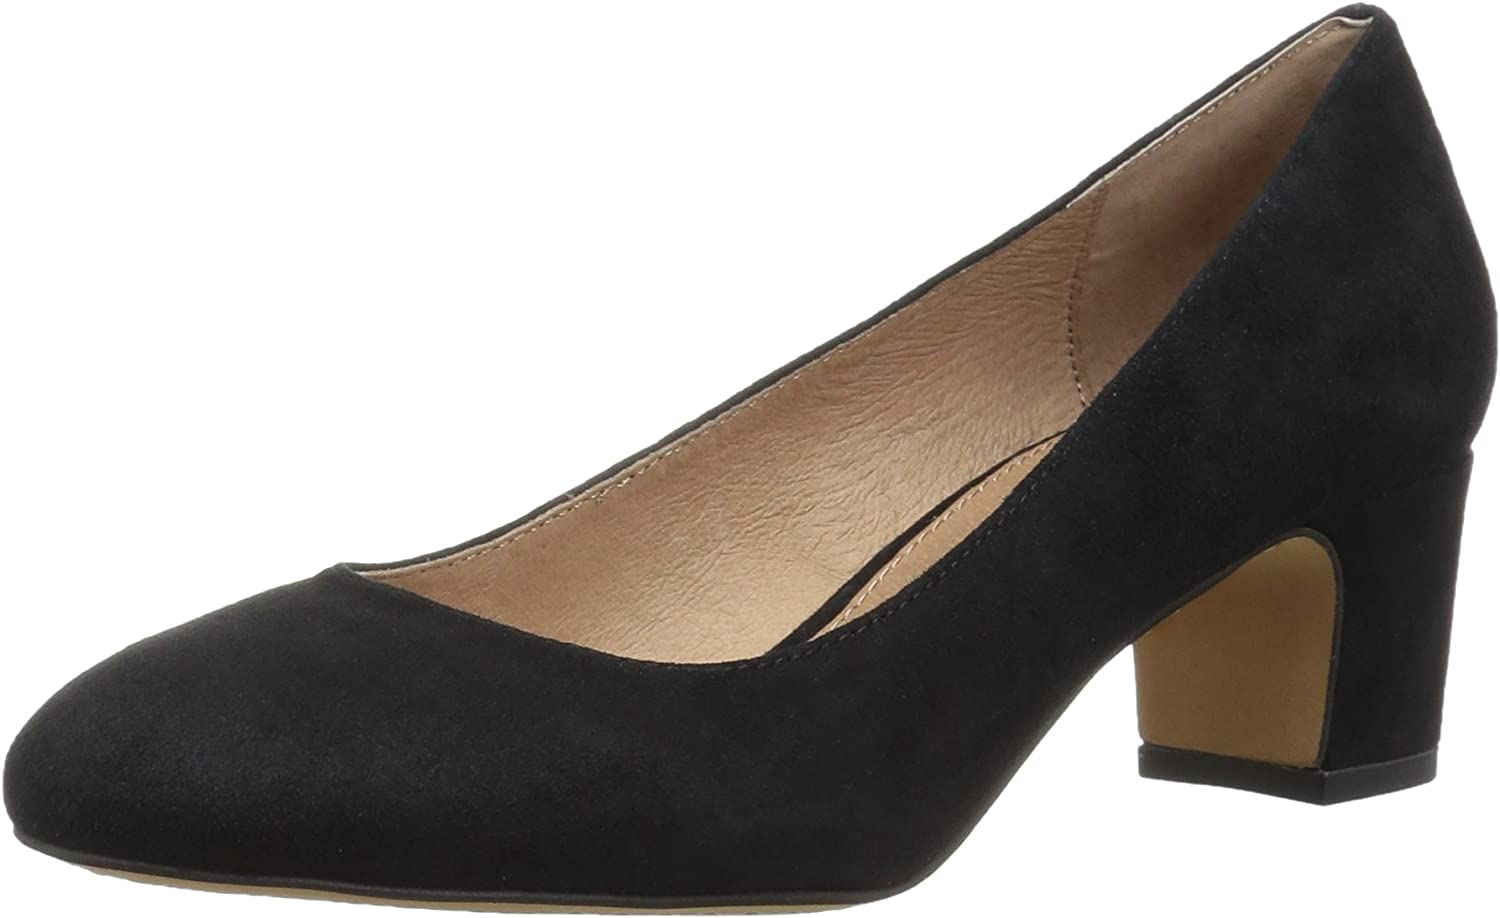 206 Collective Women's Merritt Round Toe Block Heel Pump-Low